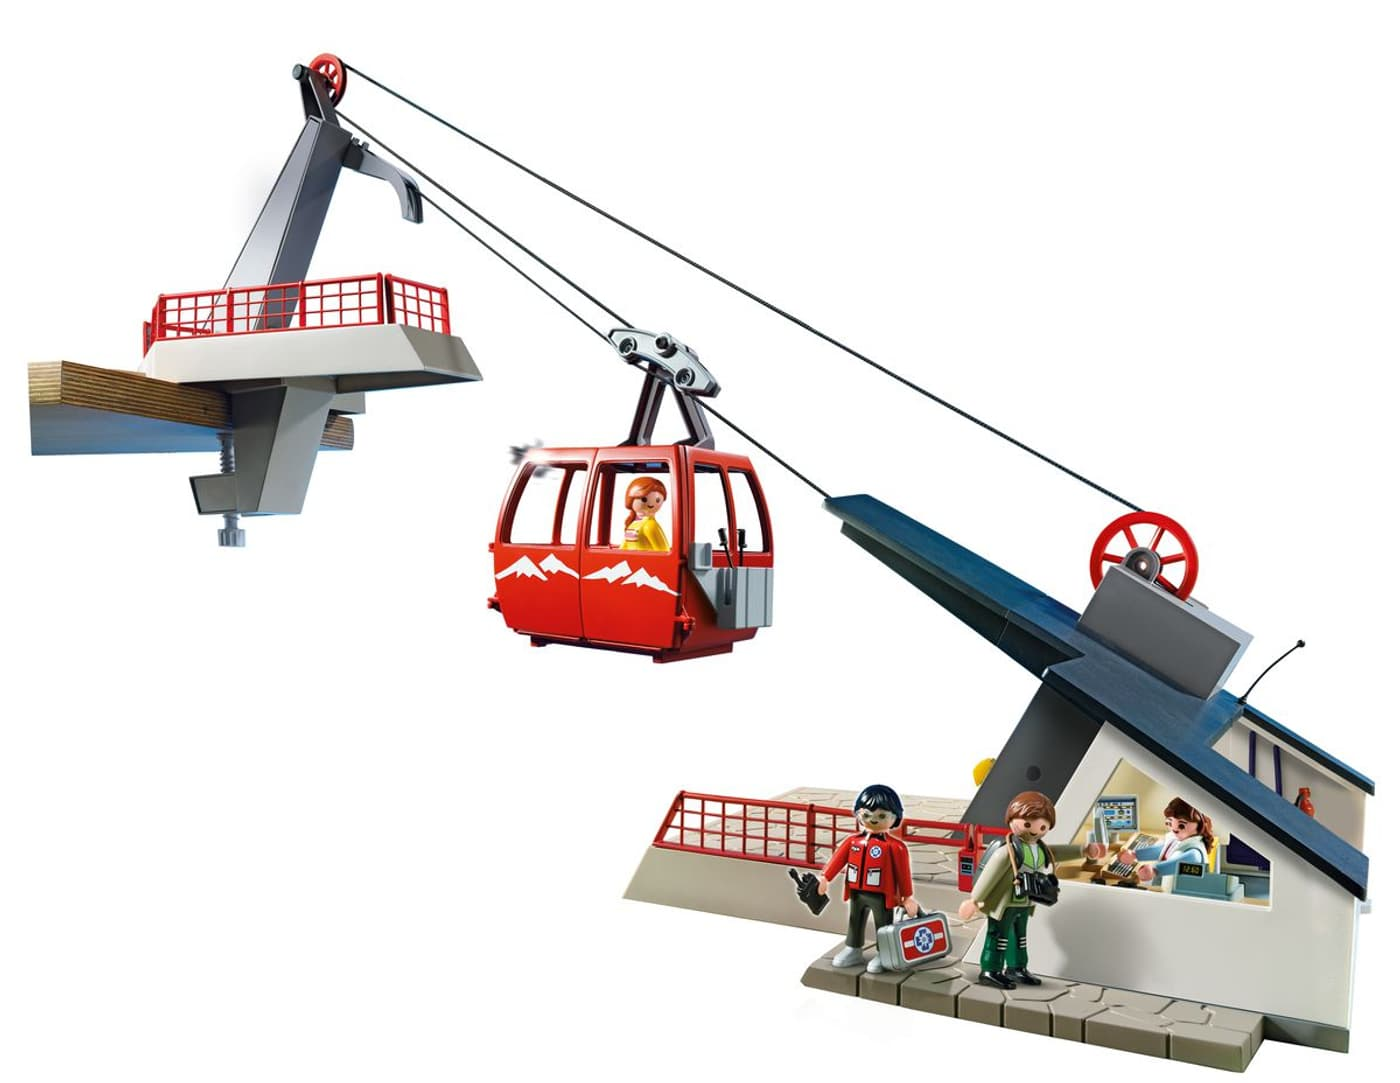 playmobil country seilbahn mit bergstation 5426 migros. Black Bedroom Furniture Sets. Home Design Ideas